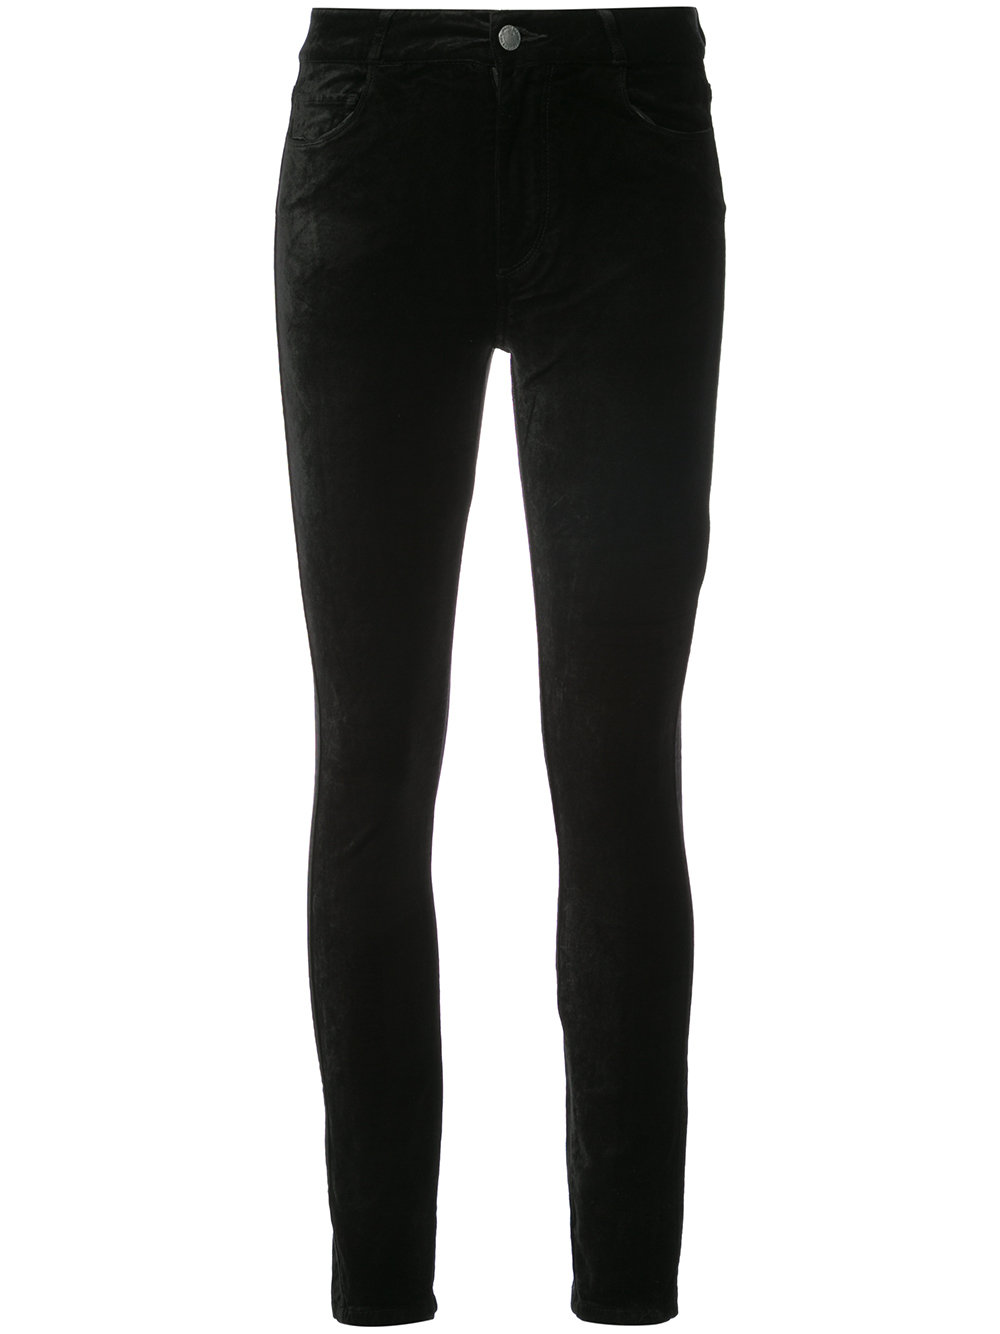 PAIGE trousers - $210